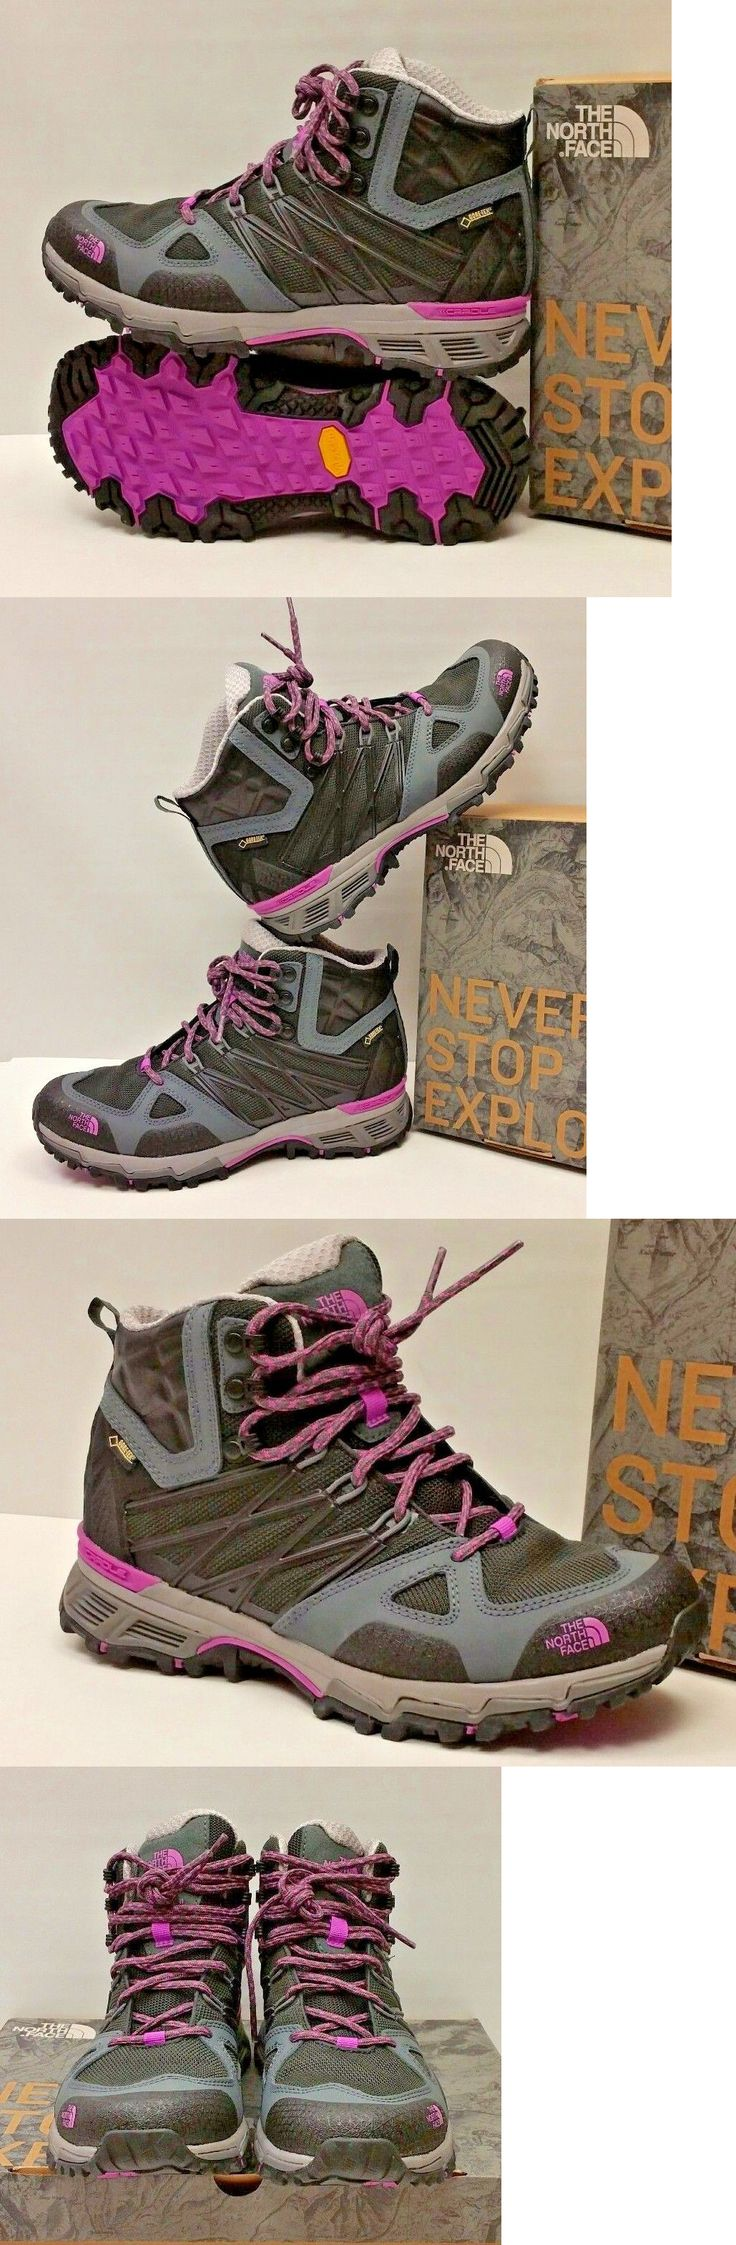 Womens 181393: The North Face Women S Boots Hiking Ultra Hike Ii Gore-Tex Size 7 -> BUY IT NOW ONLY: $95 on eBay!